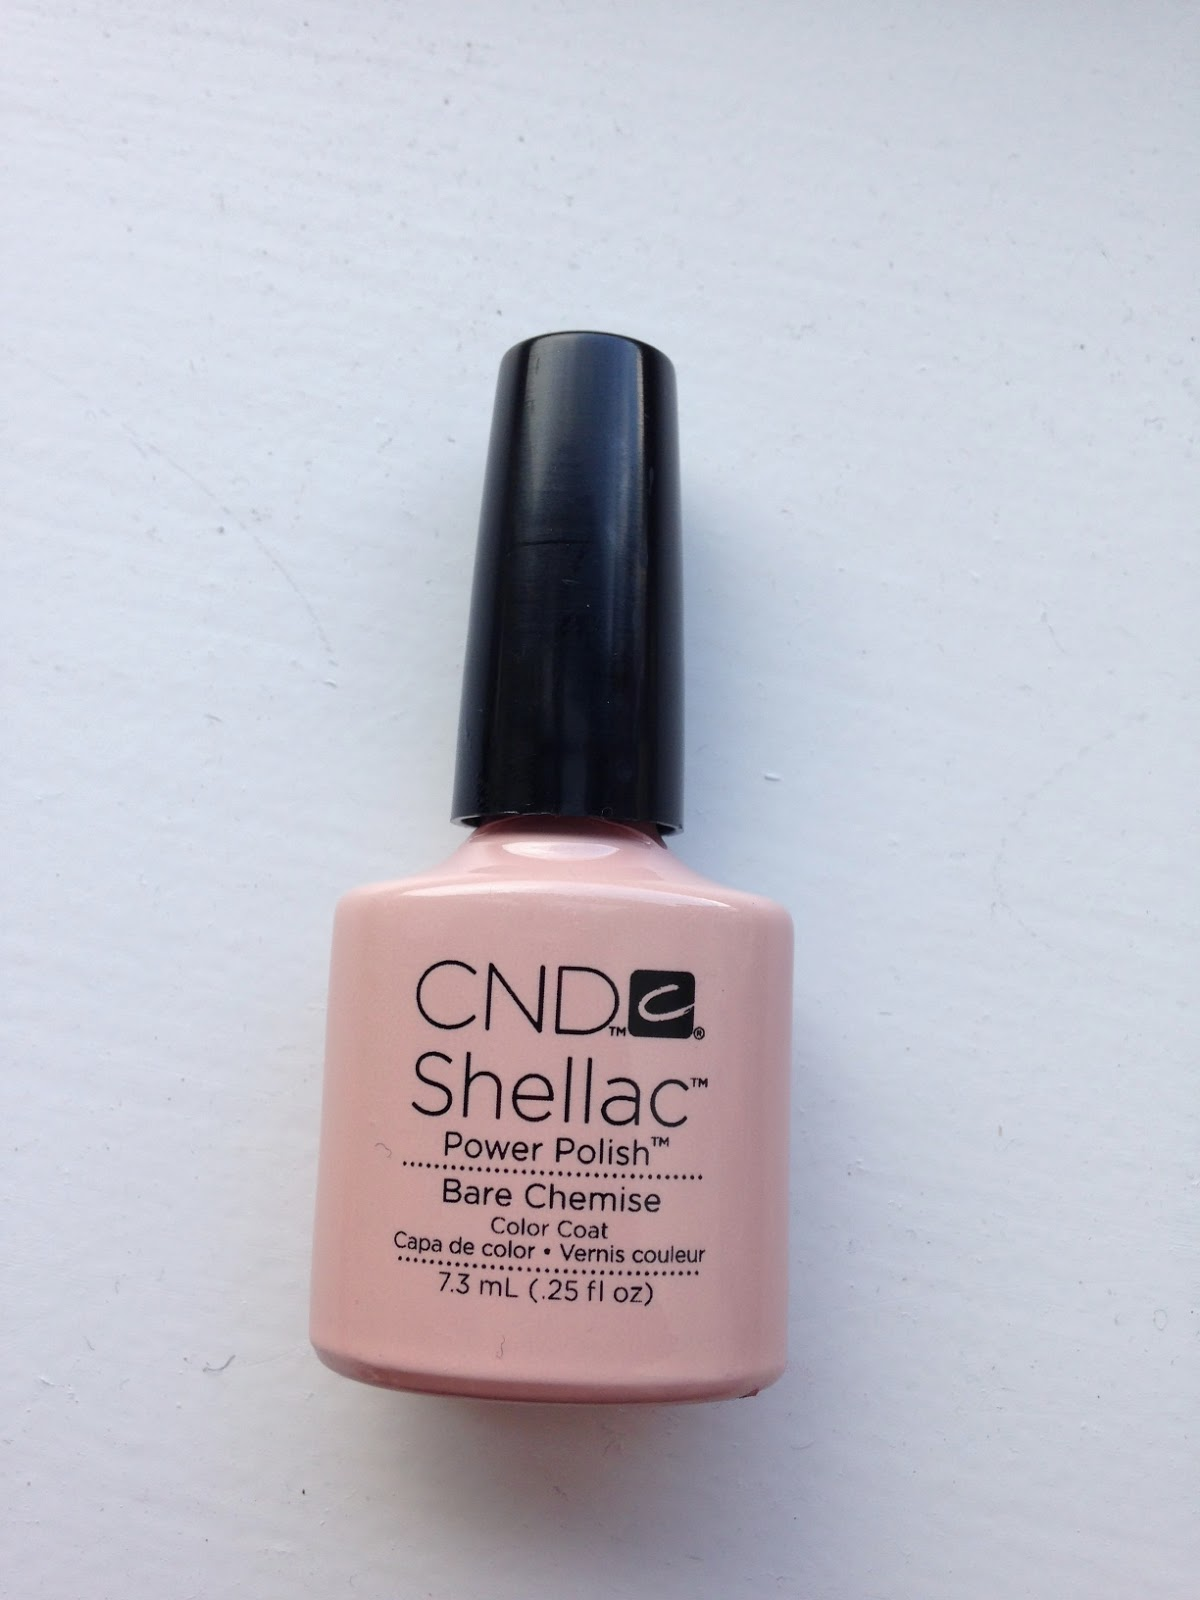 Cnd Creative Play Nail Lacquer Reviews In Nail Polish: CND Shellac Bare Chemise